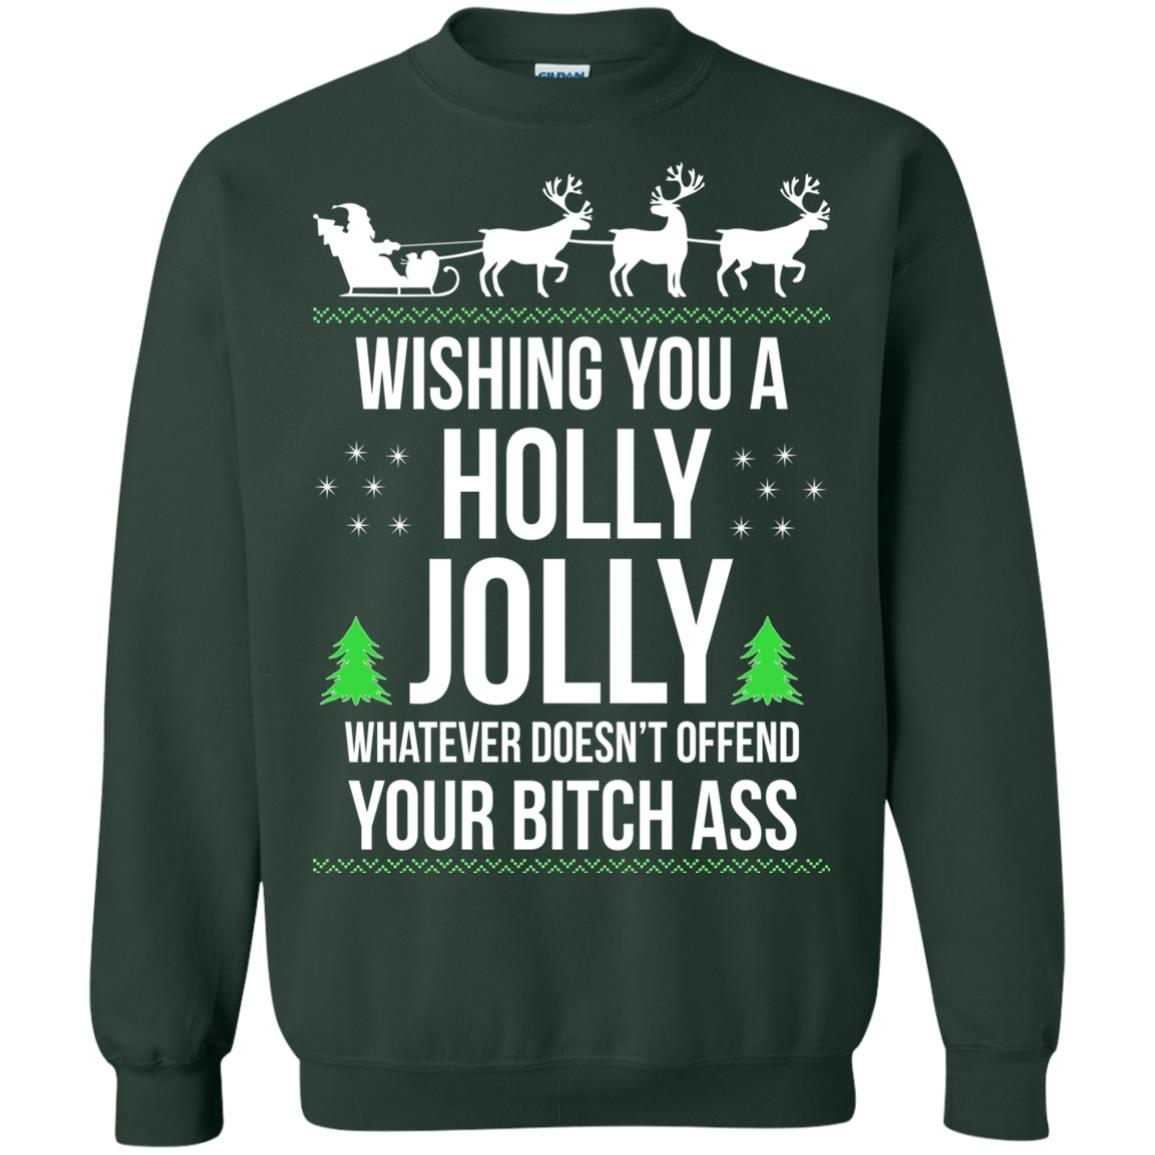 image 1191 - Wishing you a holly jolly whatever doesn't offend your bitch ass sweater, shirt